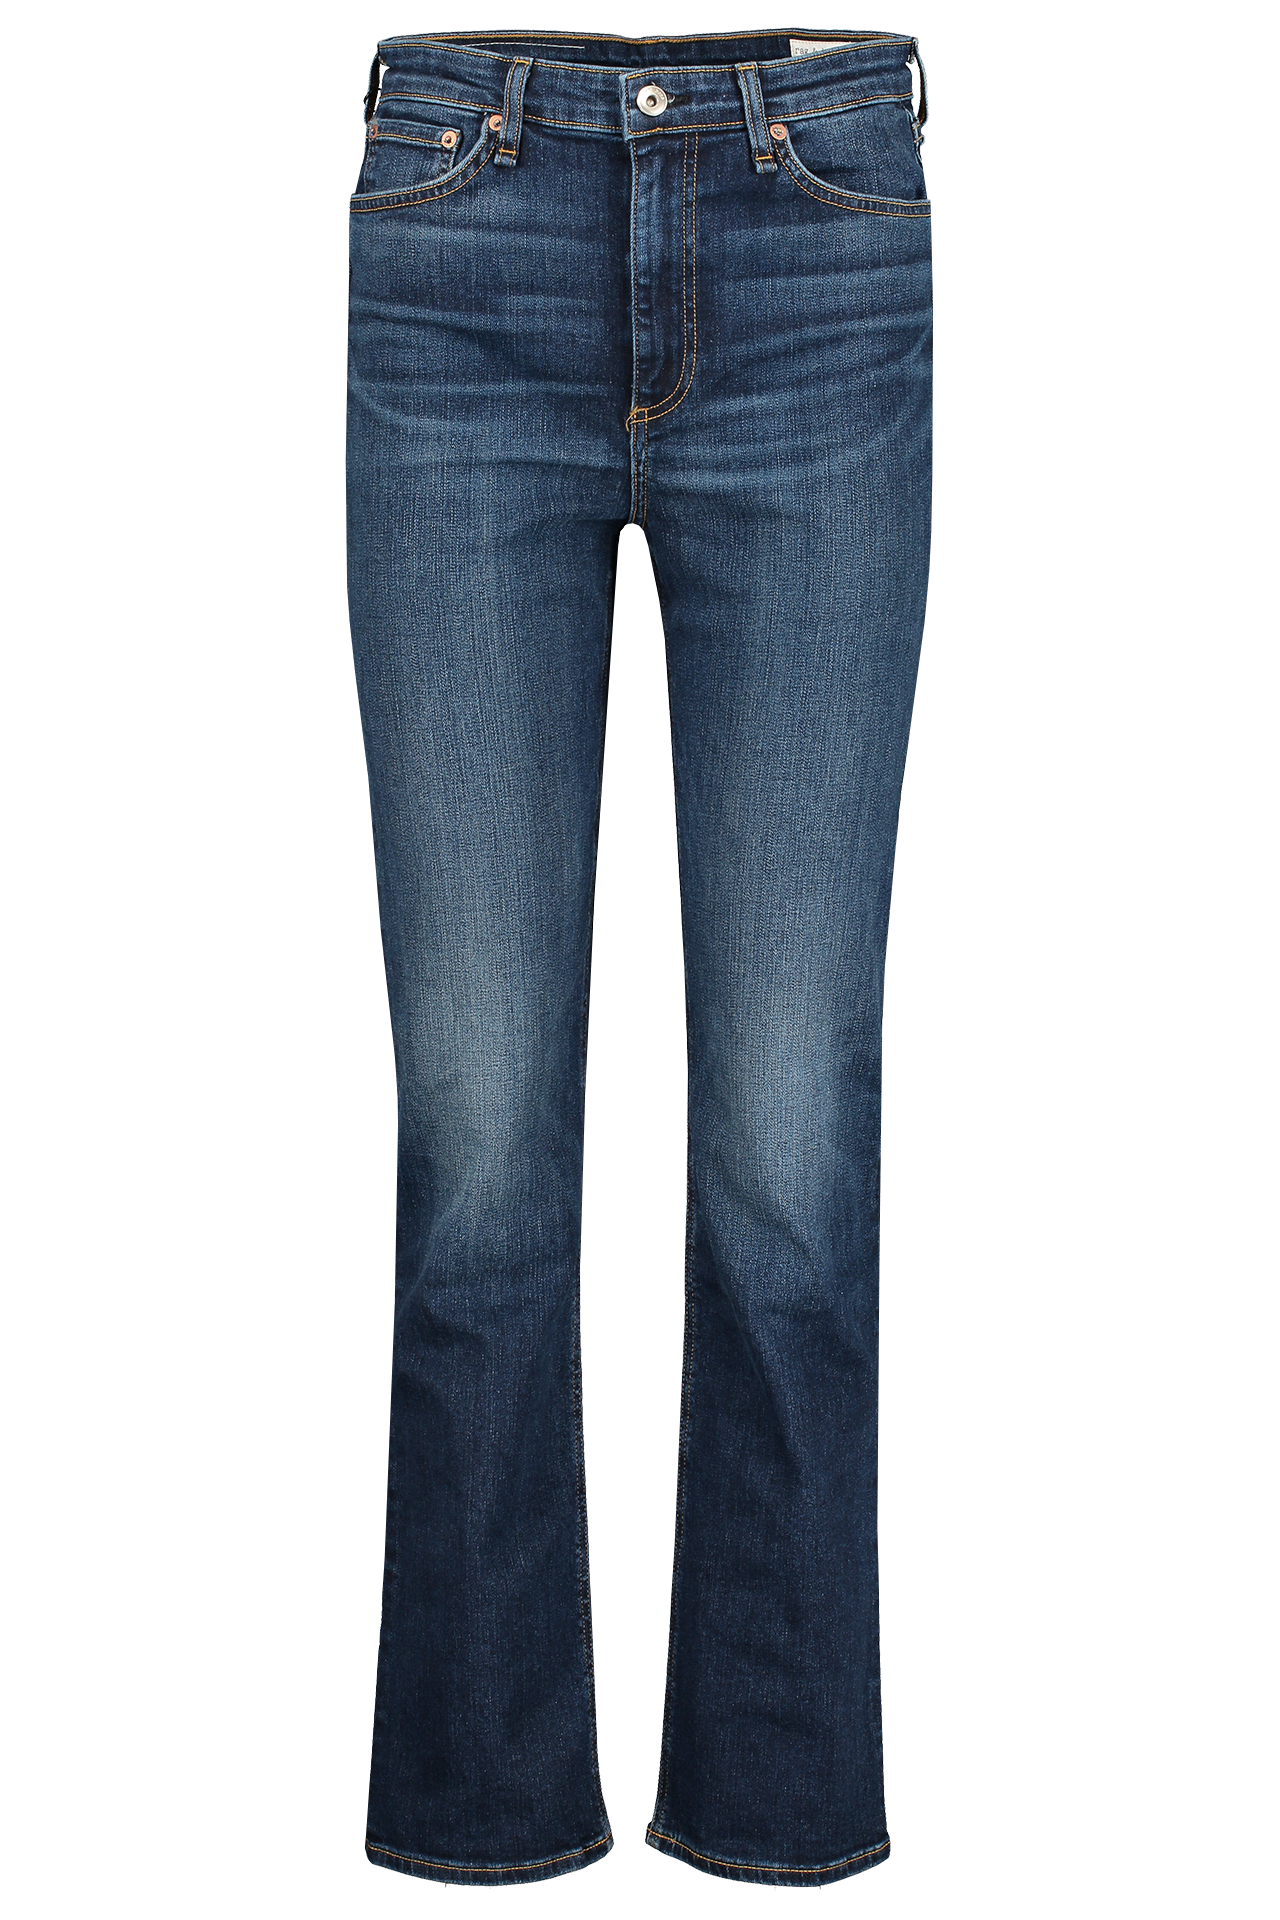 Front view image of Rag & Bone Women's Nina High Rise Cigarette Jeans